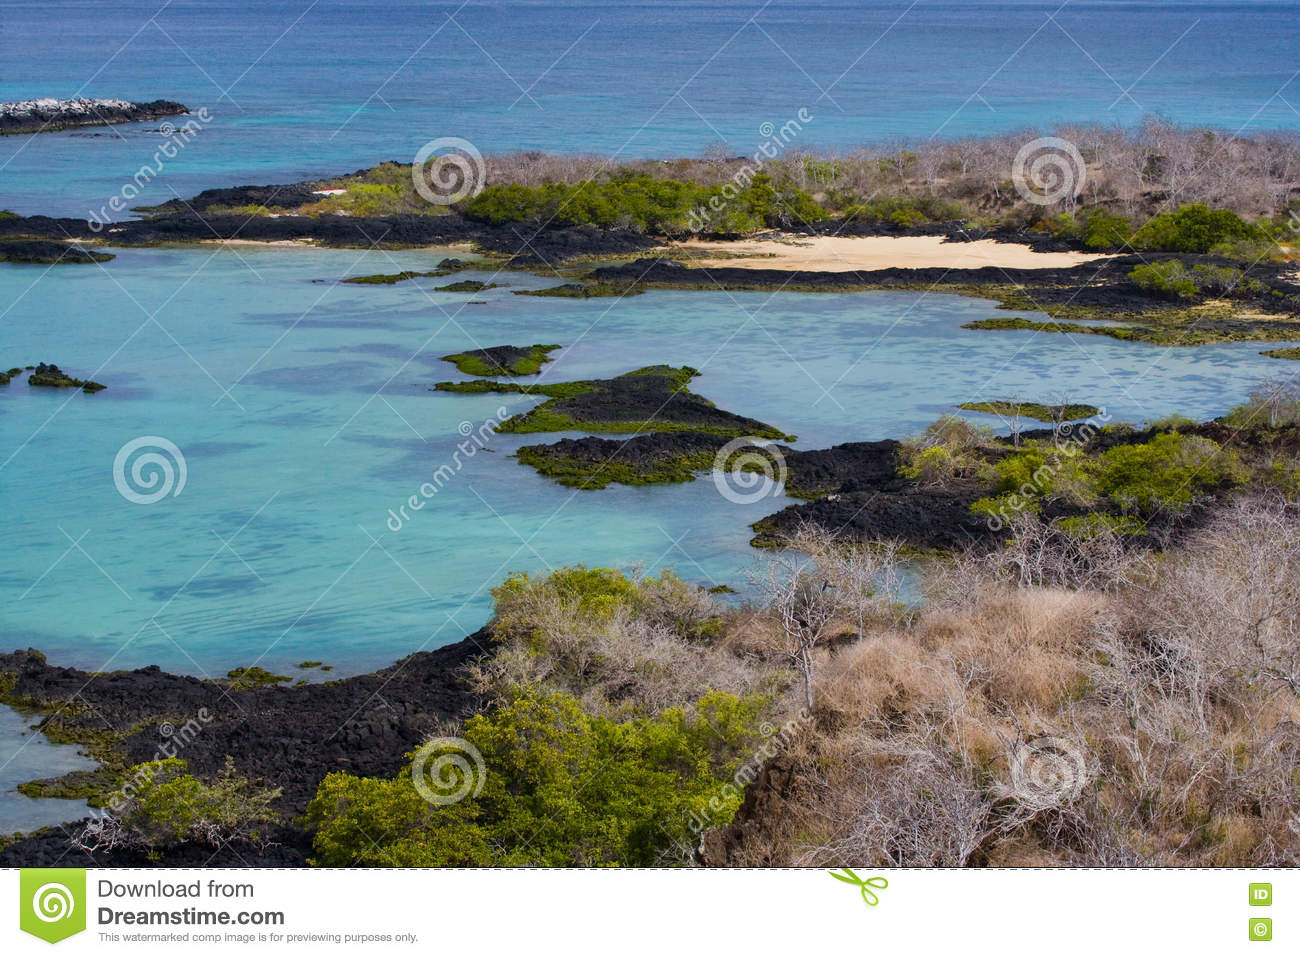 the galapagos island in ecuador essay The galapagos islands essay custom student mr teacher eng 1001-04 3 february 2017 the galapagos islands the galapagos islands were first inscribed as a world heritage site in danger in.